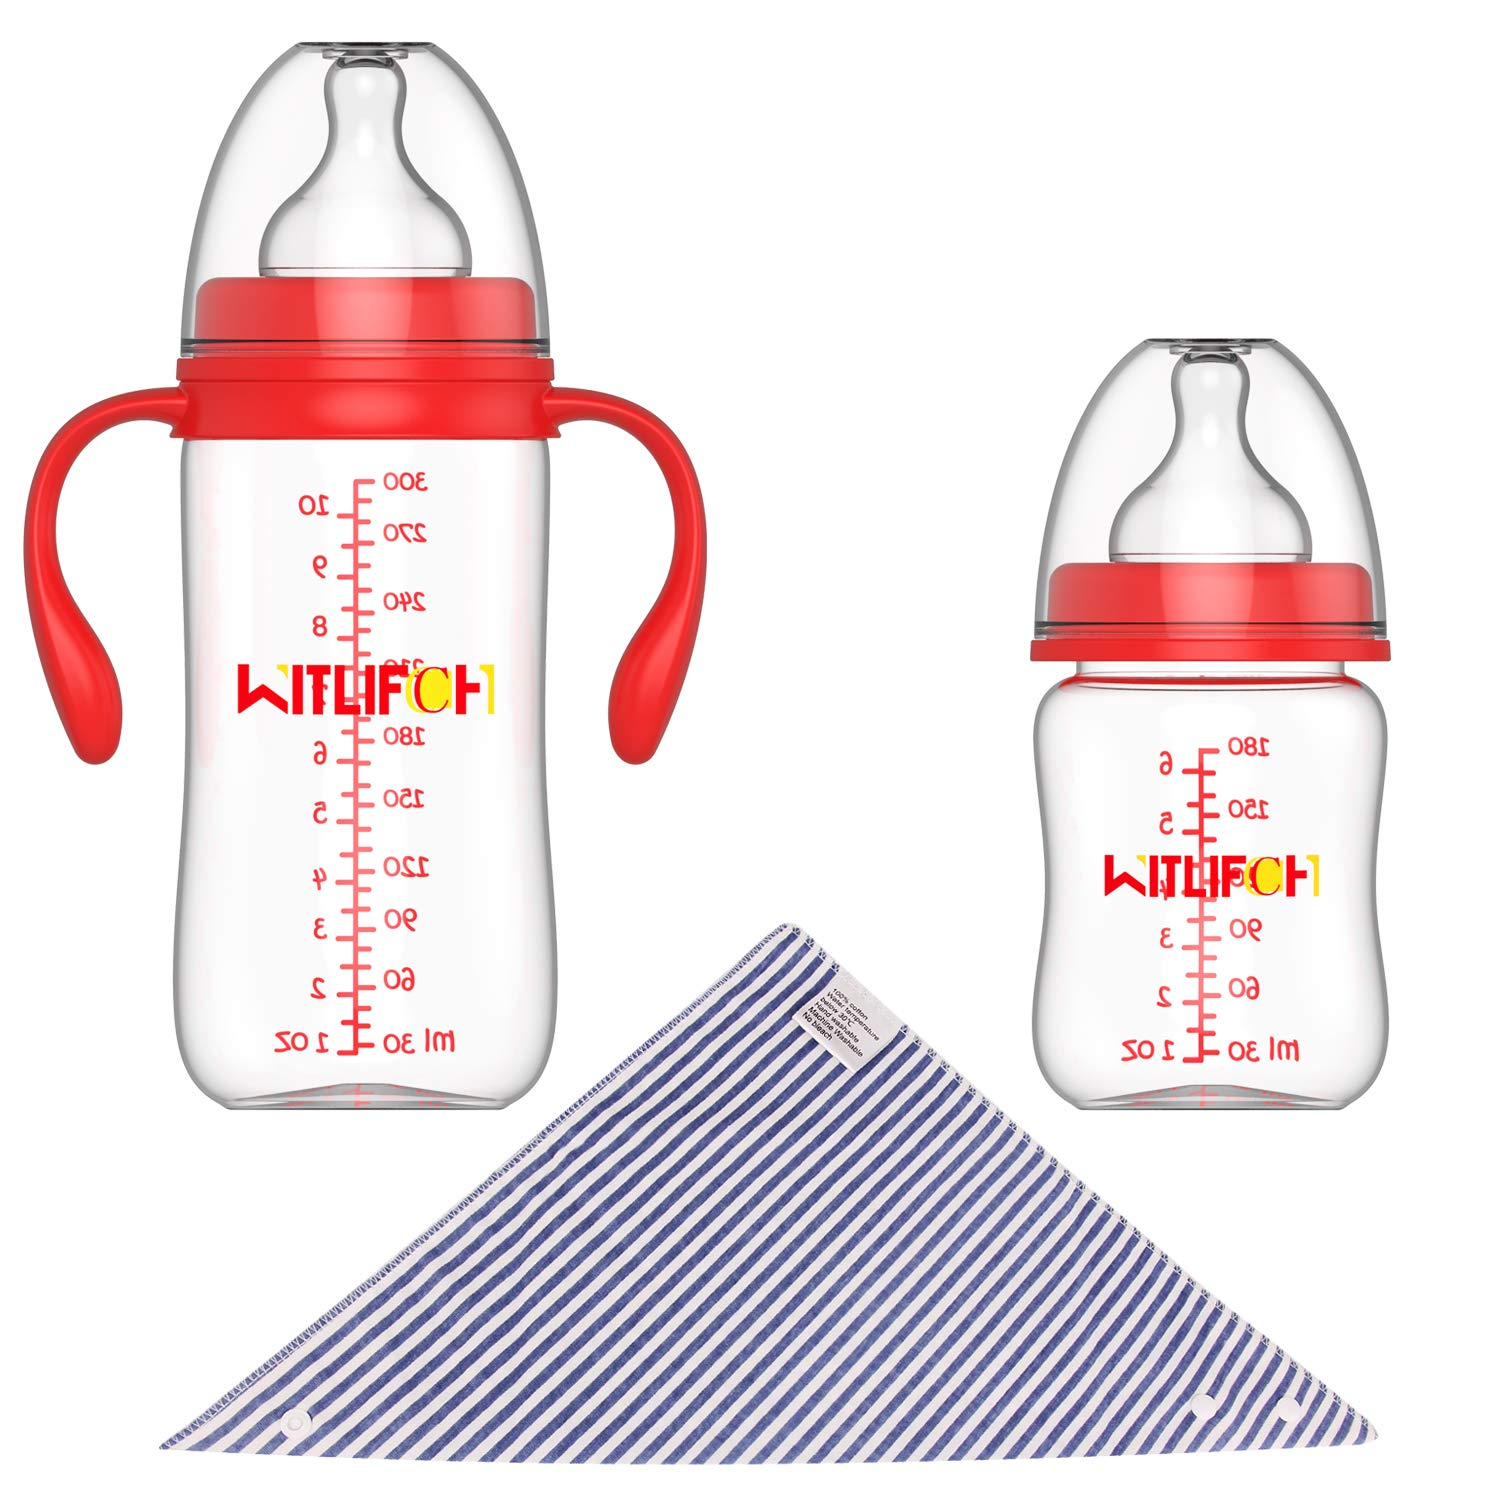 6/&10 OZ Baby Bottles for Girls and Boys with Handle 2 Pack Wide Neck Bottles Clear BPA-Free Feeding Bottle Gift Set WITLIFCH Anti-Colic Baby Bottles Newborn